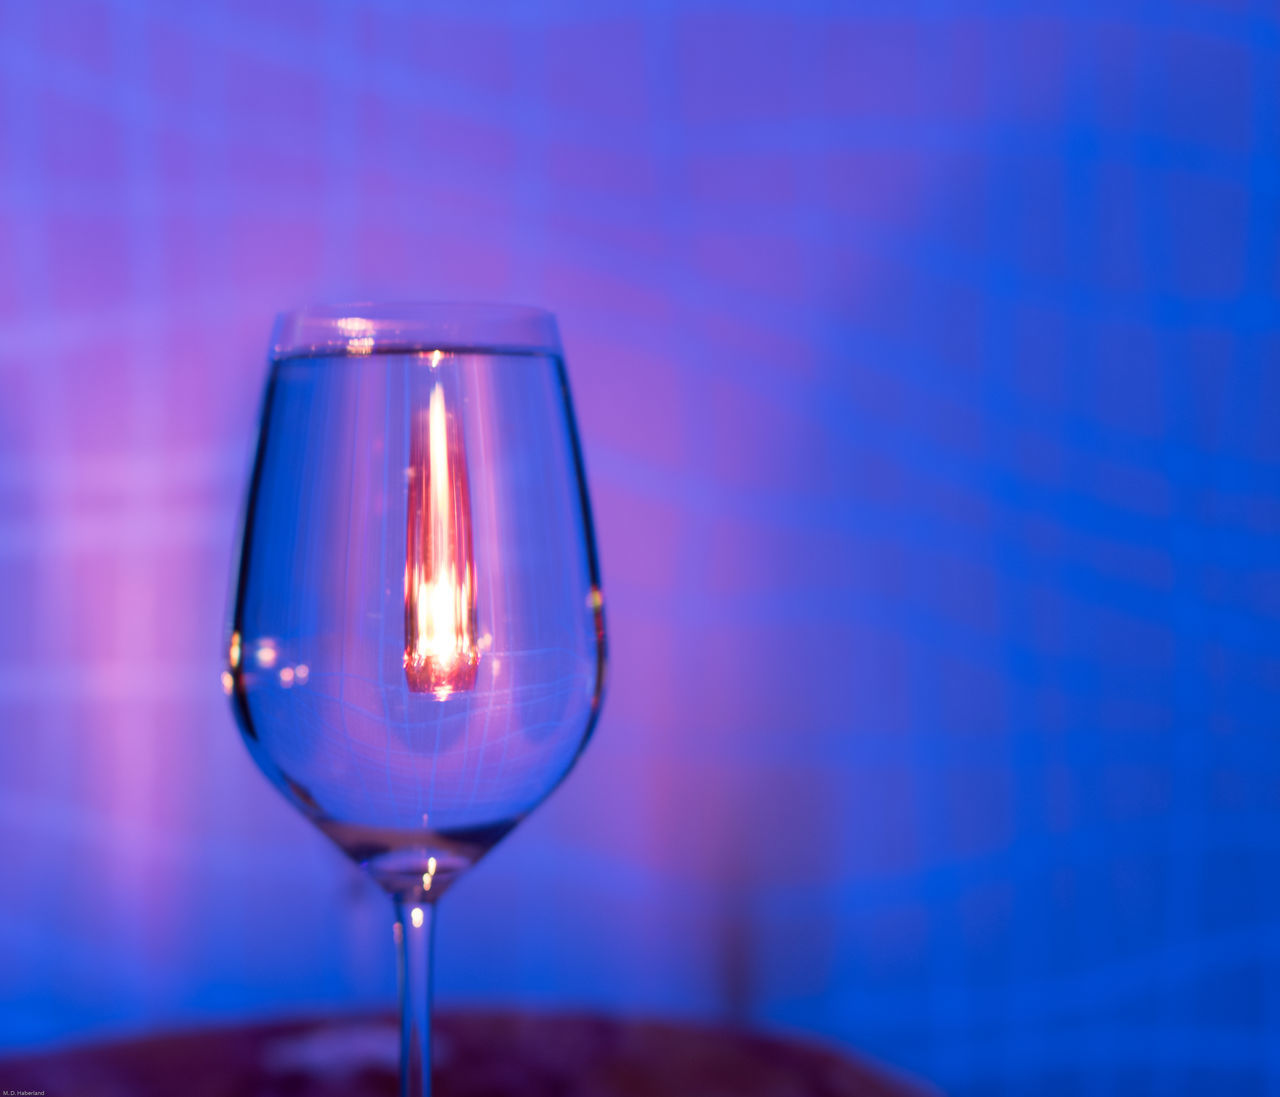 Blacklight Magic Glass Candle Light Mirrored Illuminated Indoors  Waterglass No People Effects Candle Night EyeEmNewHere